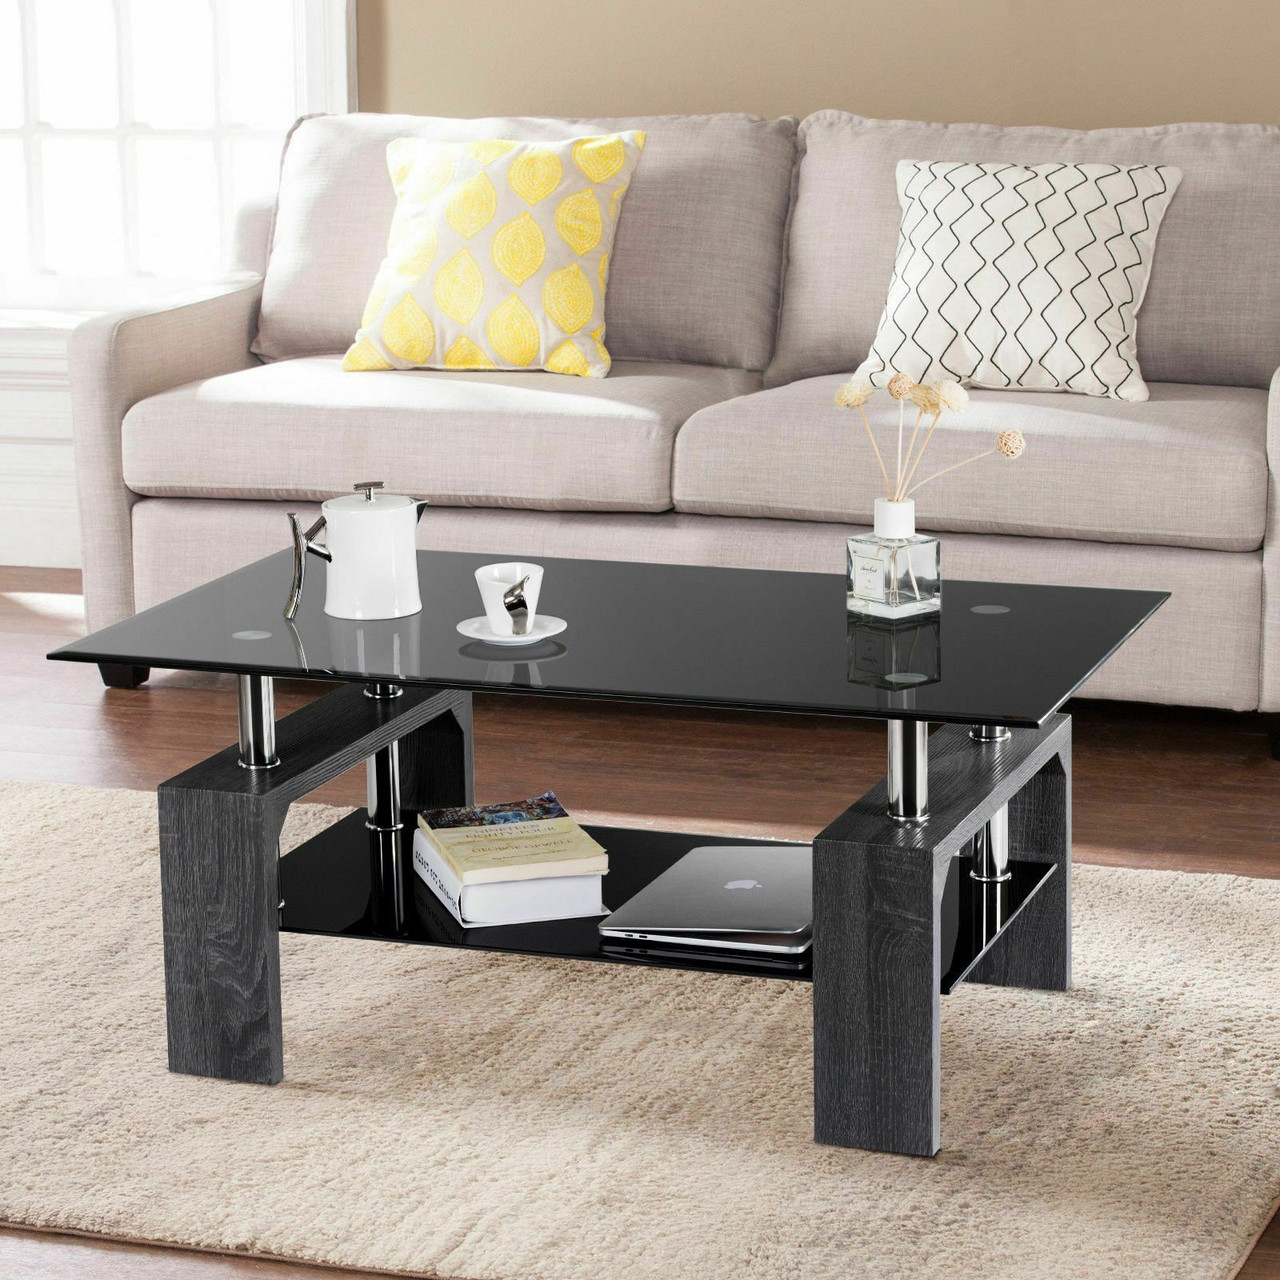 Picture of: Rectangular Tempered Glass Coffee Table With Shelf Gray Hw57279hs By Cw